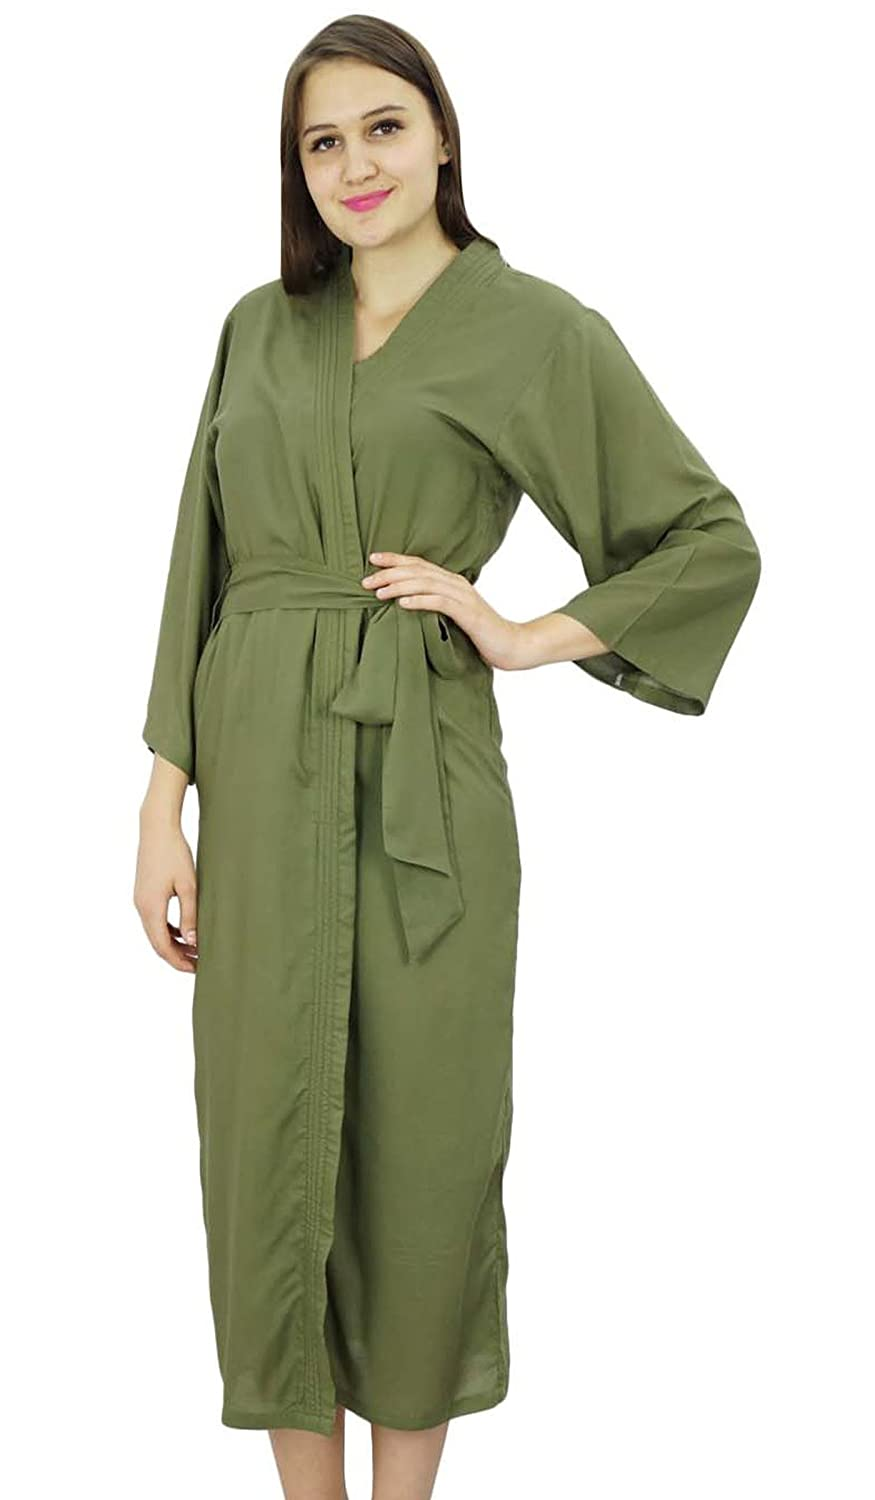 Bimba Women Long Solid Belt Robe Soft Modal Cotton Wrap Round Plain Bath Robe